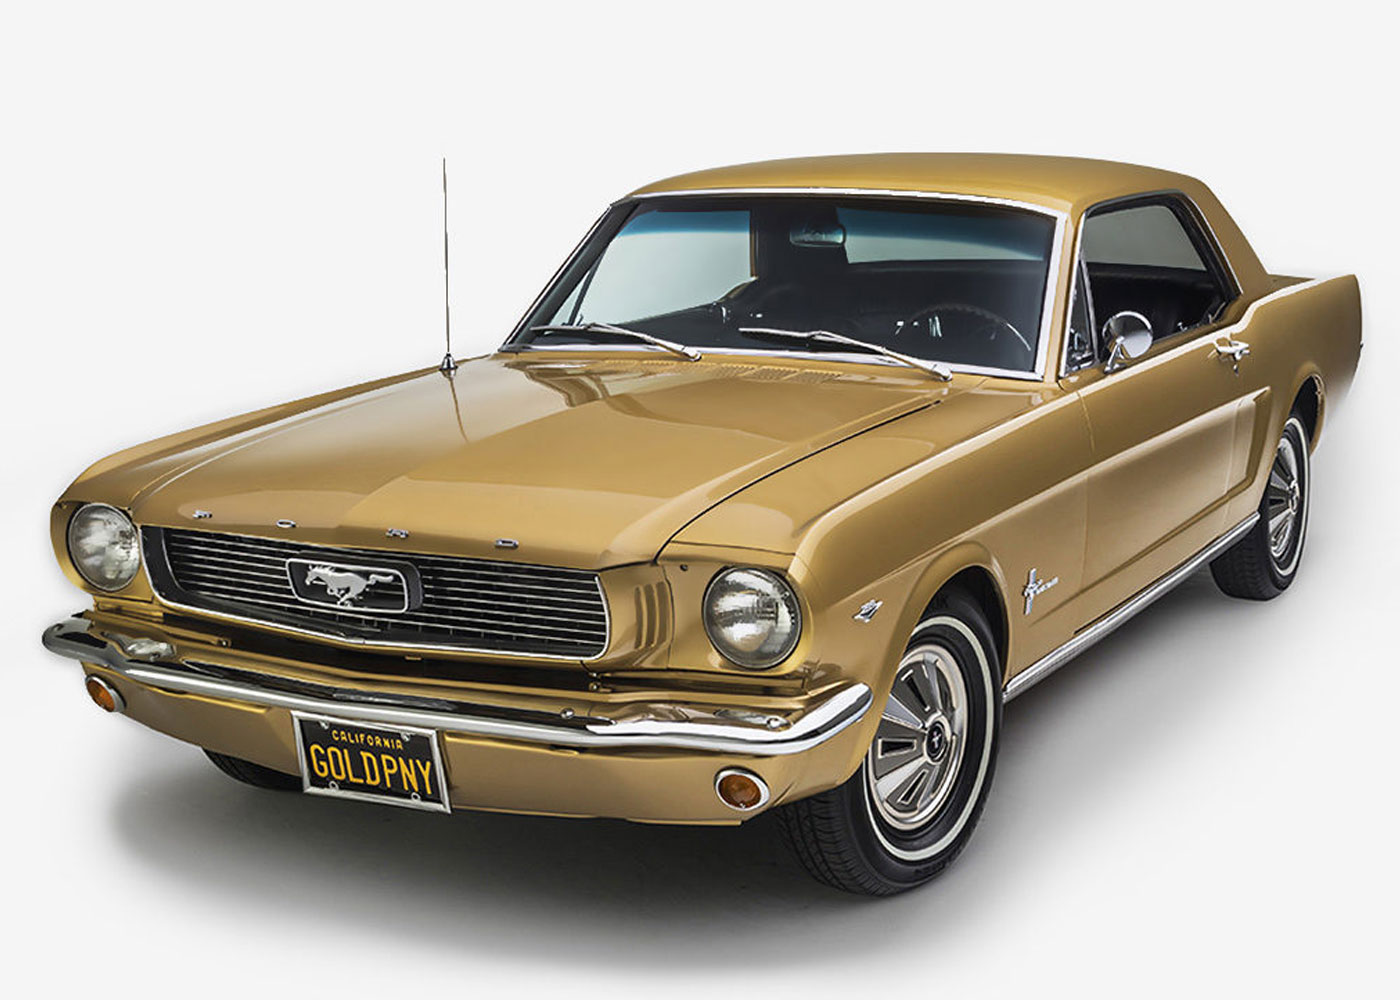 Ford Mustang One Milltion Anniversary